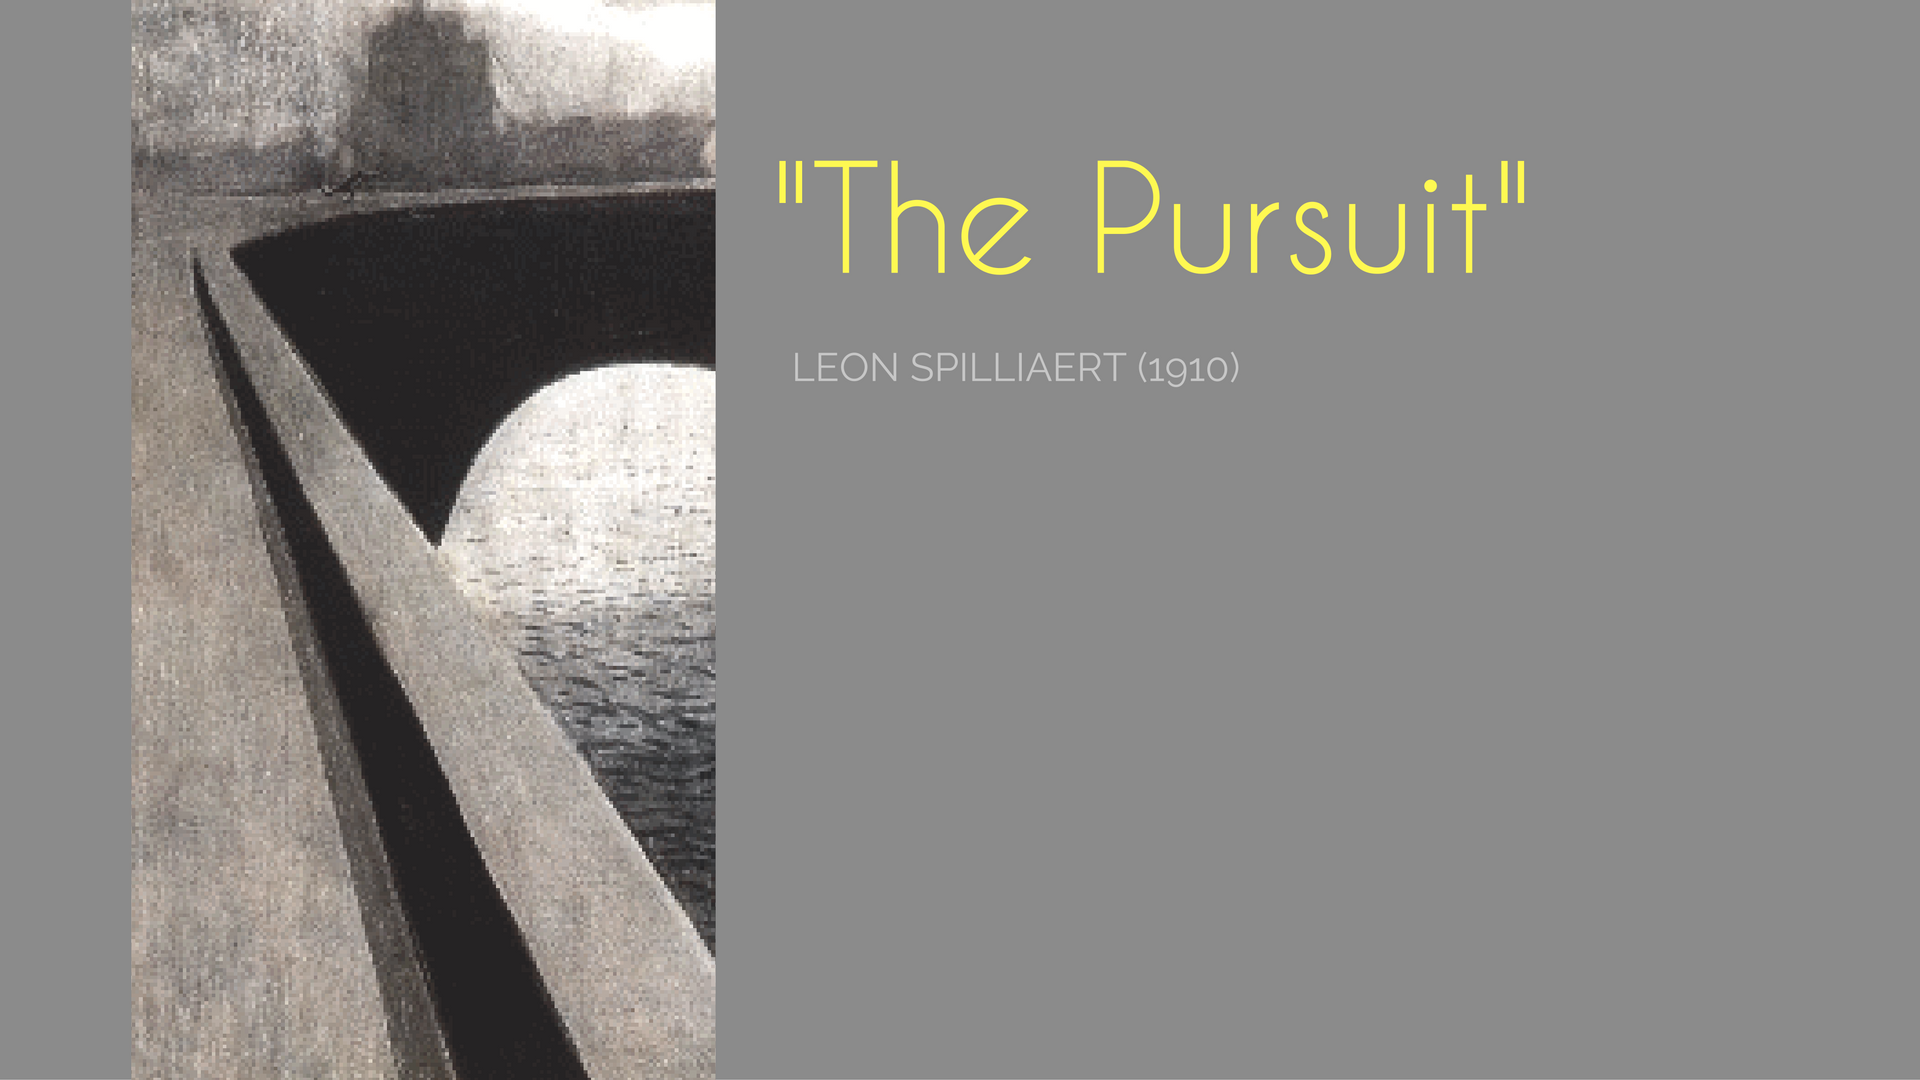 the pursuit Leon Spillaert Belgian symbolist painter of night and nocturnal painting